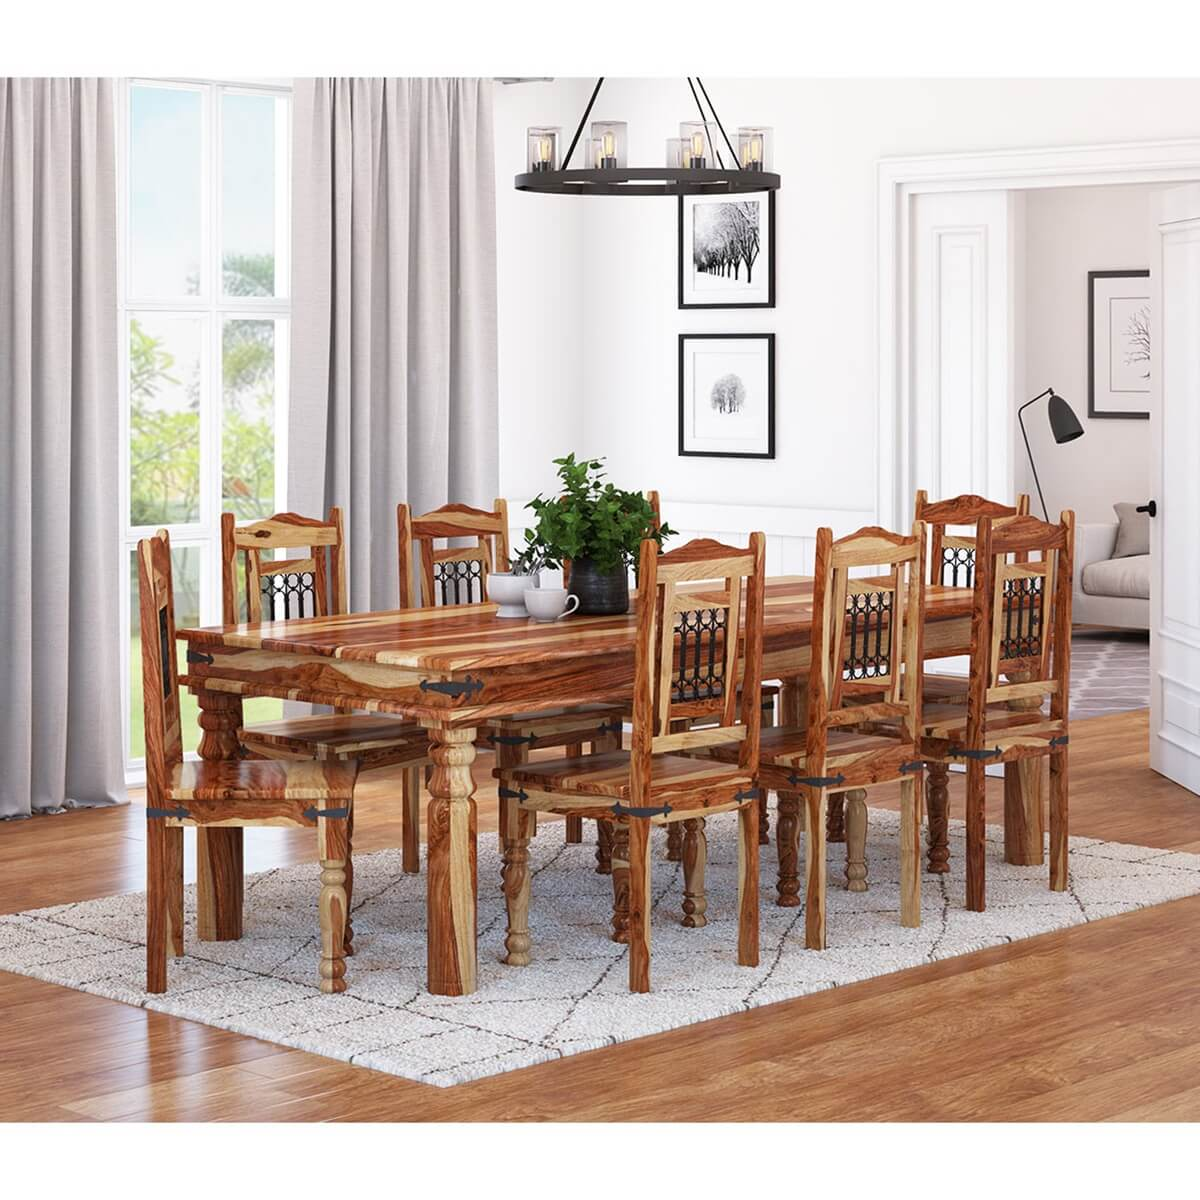 Rustic Dining Room Table Sets: Dallas Classic Solid Wood Rustic Dining Room Table And